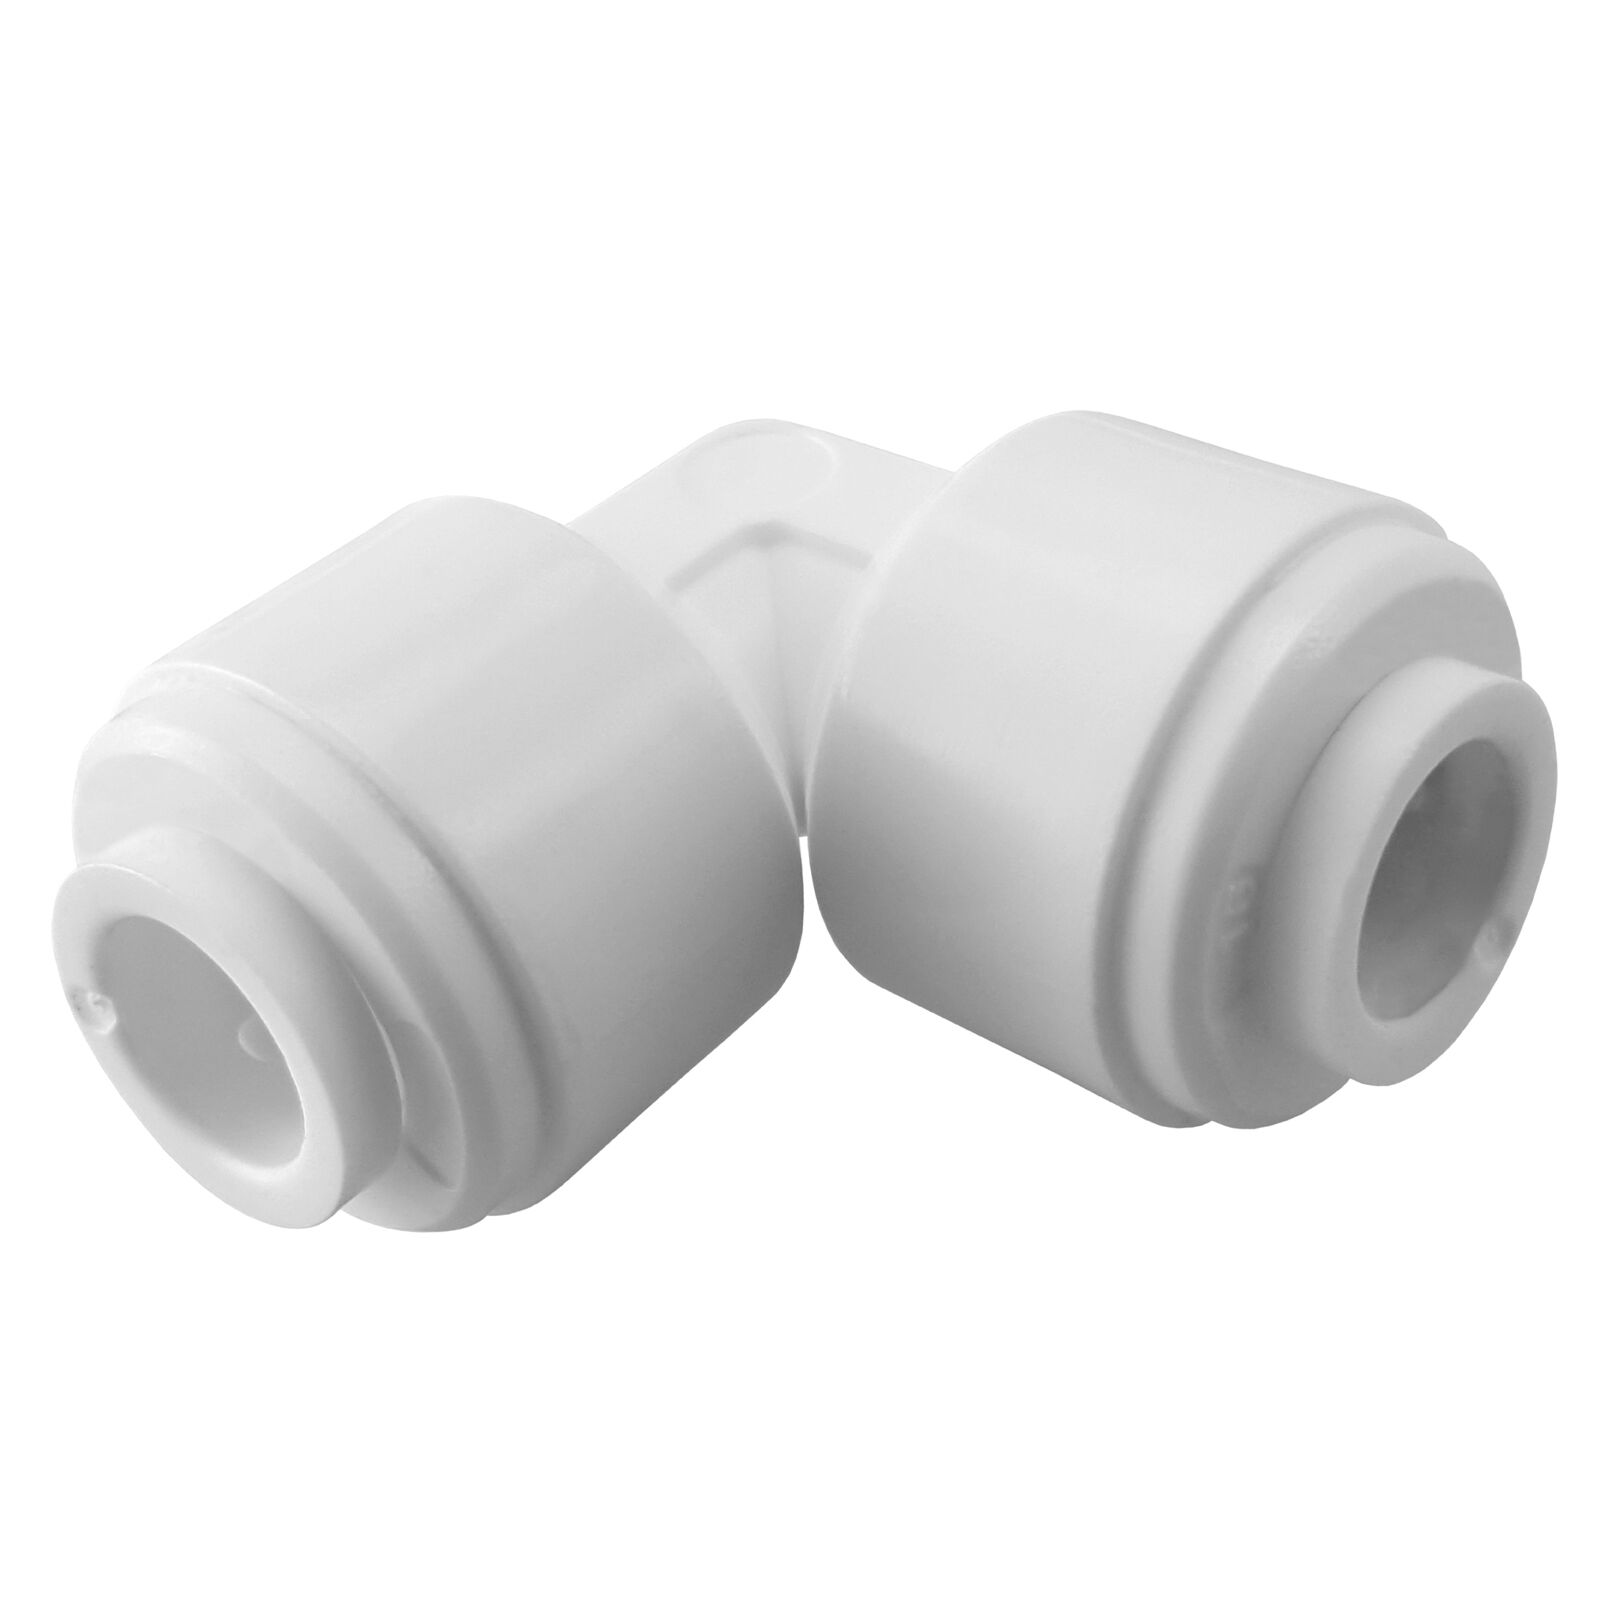 Express Water 1 4  Union Elbow Fitting Connection for Water Filters   RO Systems